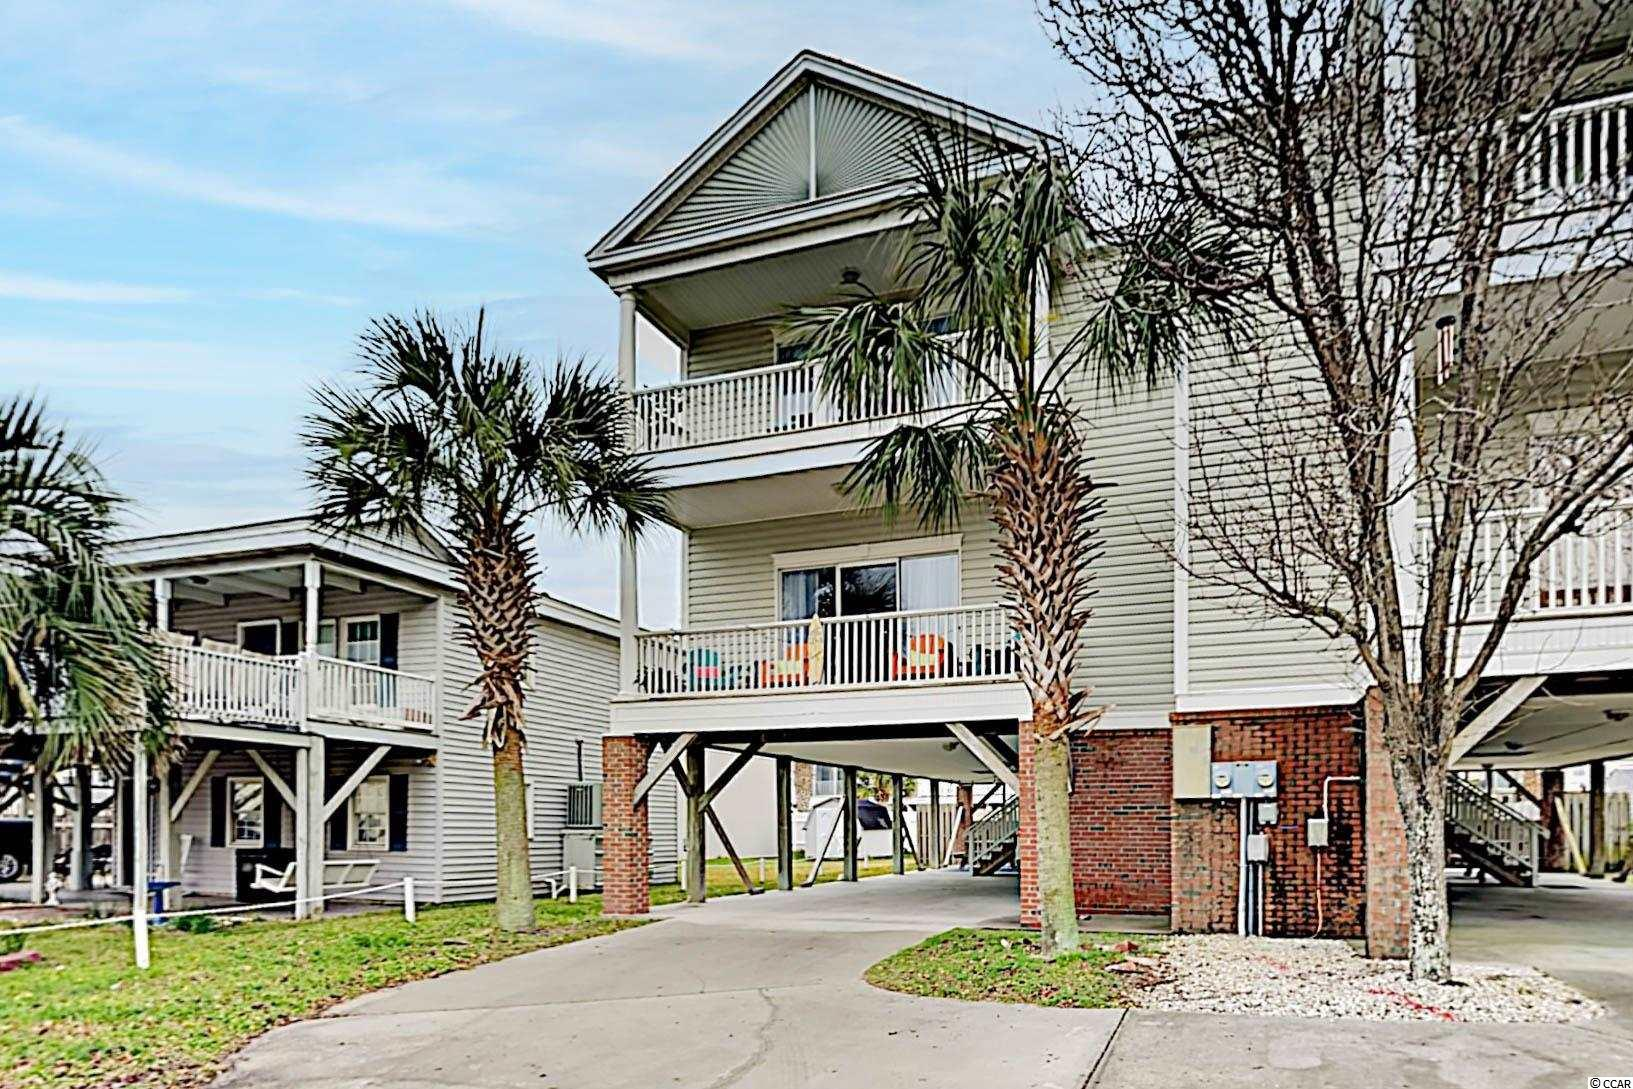 This is an investors dream!  Fantastic 5BR/4.5BA home in Surfside Beach with many recent upgrades.  Relax on one of the two balconies with views of the ocean as this home is only a steps away from the beach.   Home has recently undergone many fantastic upgrades including new energy efficient water heater with lifetime warranty, energy efficient thermostats, New dryer, new refrigerator, new paint, luxury vinyl plank flooring, new quartz counters in kitchen with backsplash, and many other nice remodels. Behind the home is your own private pool for those late night swims.  Property is rented solid and has fantastic AirBnB potential. Square footage is approximate and not guaranteed.  Buyer is responsible for verification.